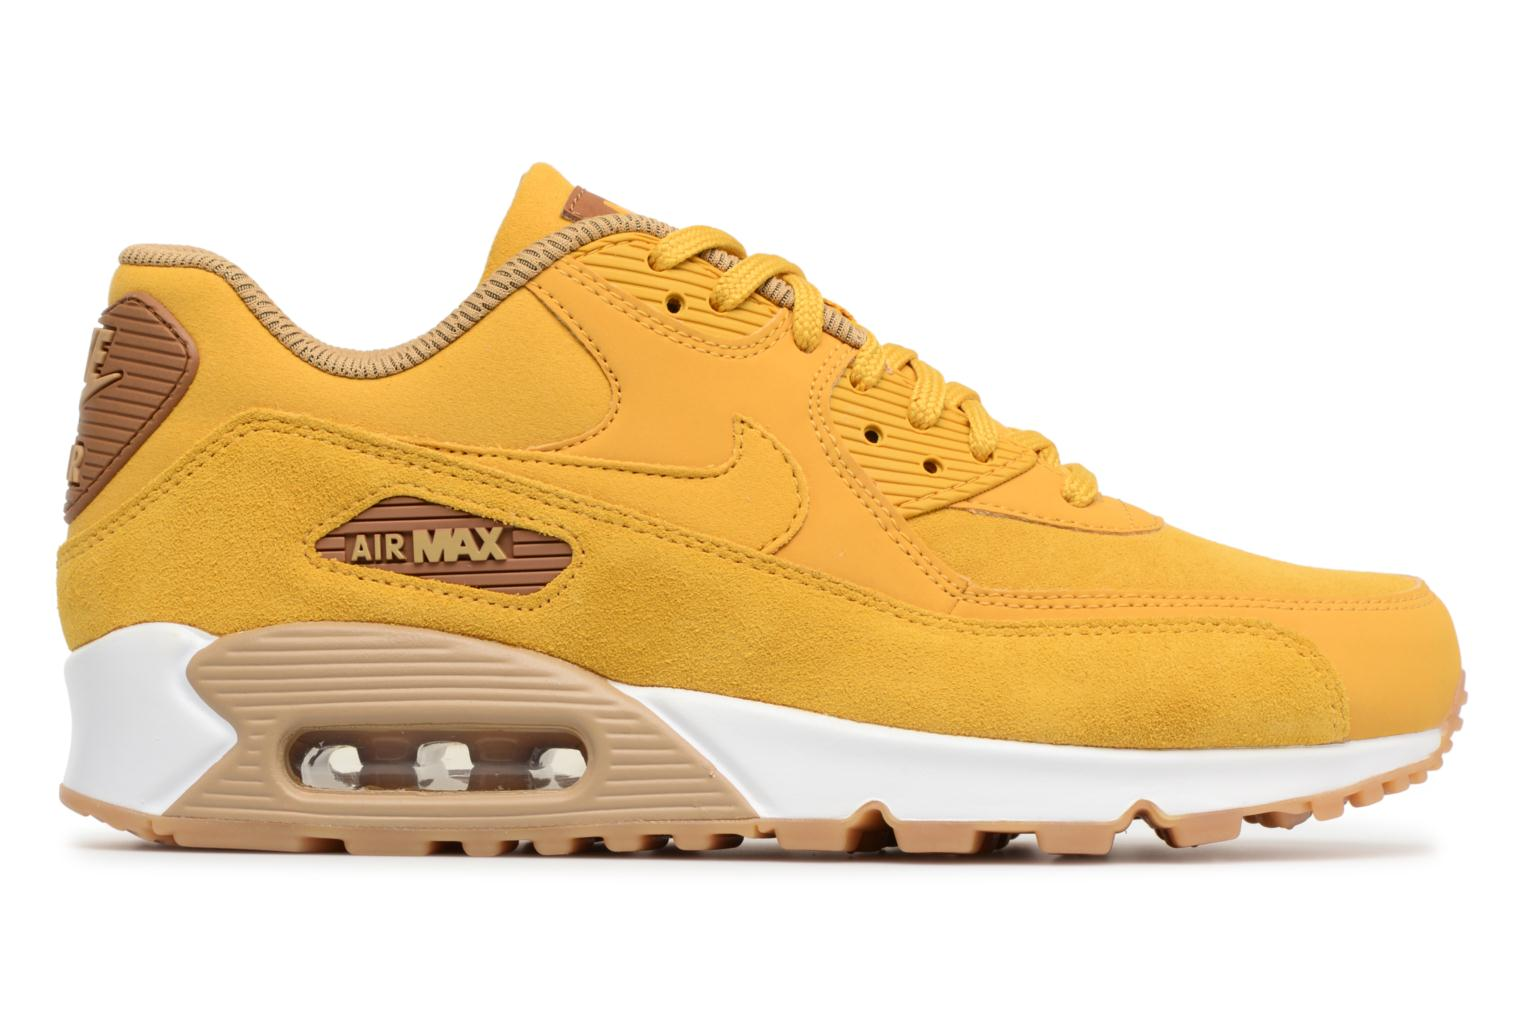 Wmns Air Max 90 Se Mineral Yellow/Mineral Yellow